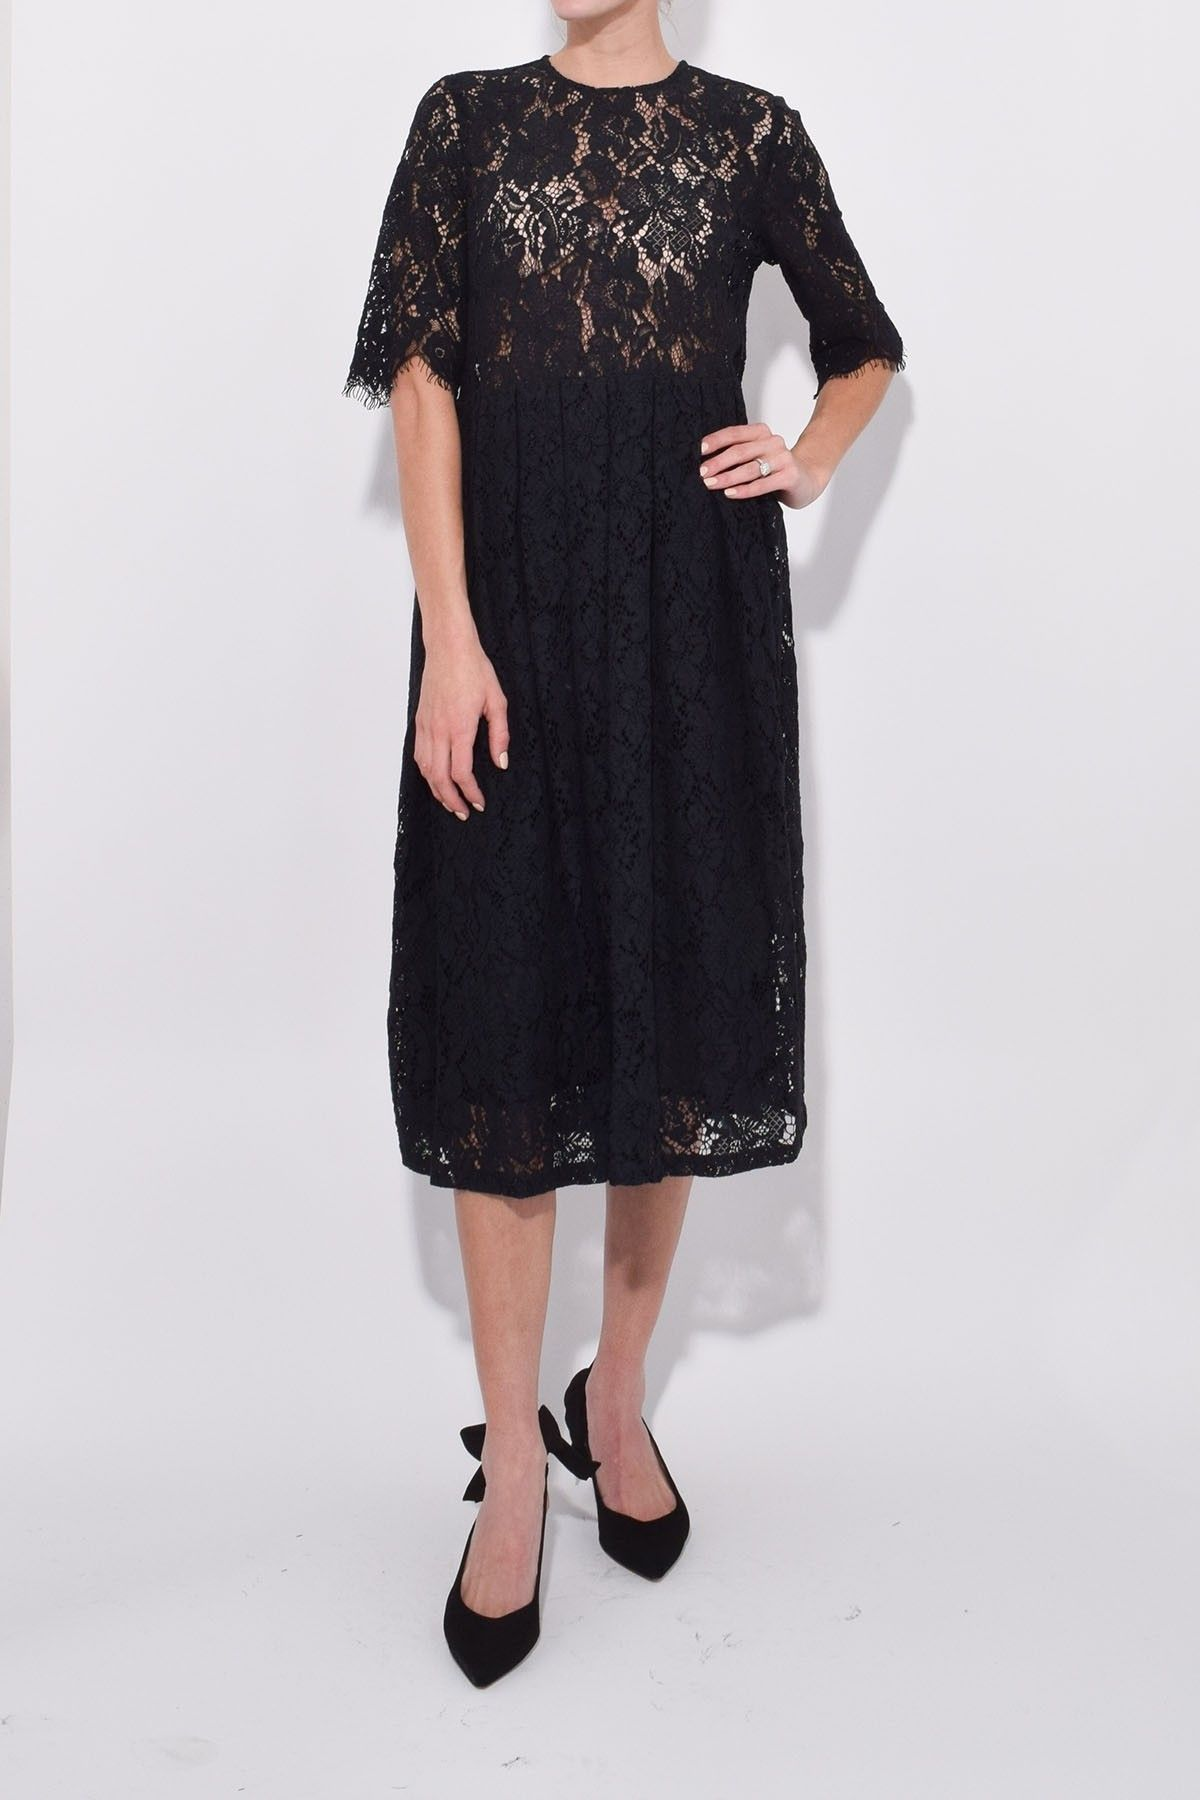 bc6155b4 Ganni Cotton Lace Dress in Black | Hampden Dresses | Lace dress ...